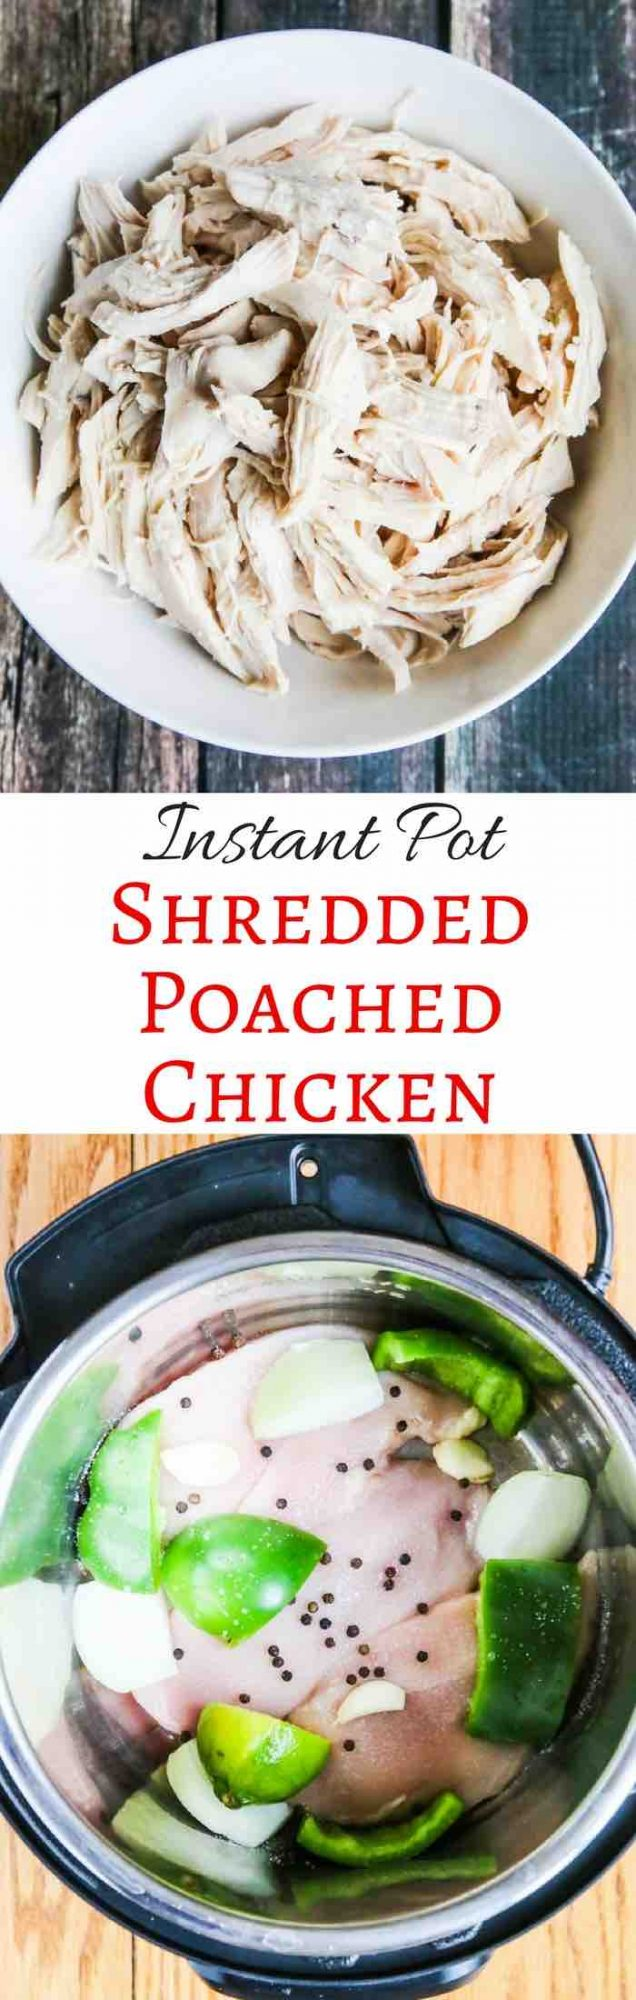 Instant Pot Shredded Poached Chicken Recipe Jeanette S Healthy Living